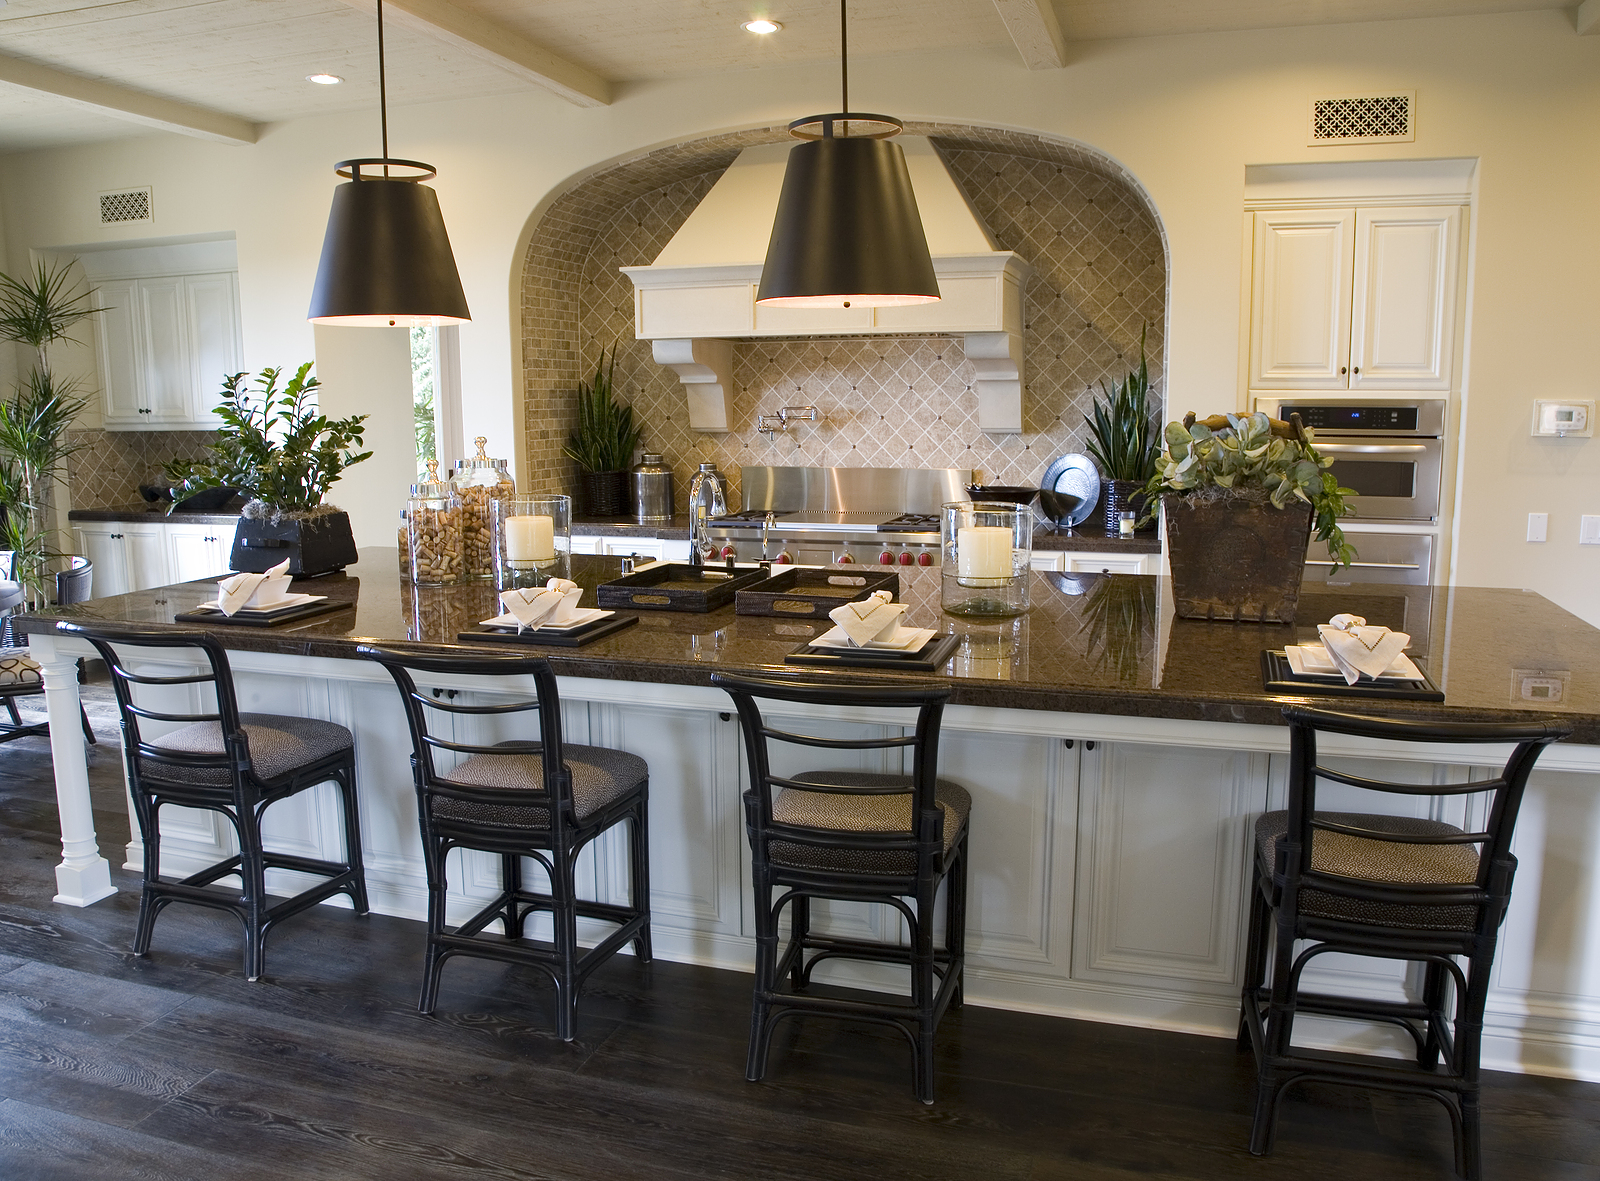 Custom Kitchens Renovations By MC Painting And Renovations